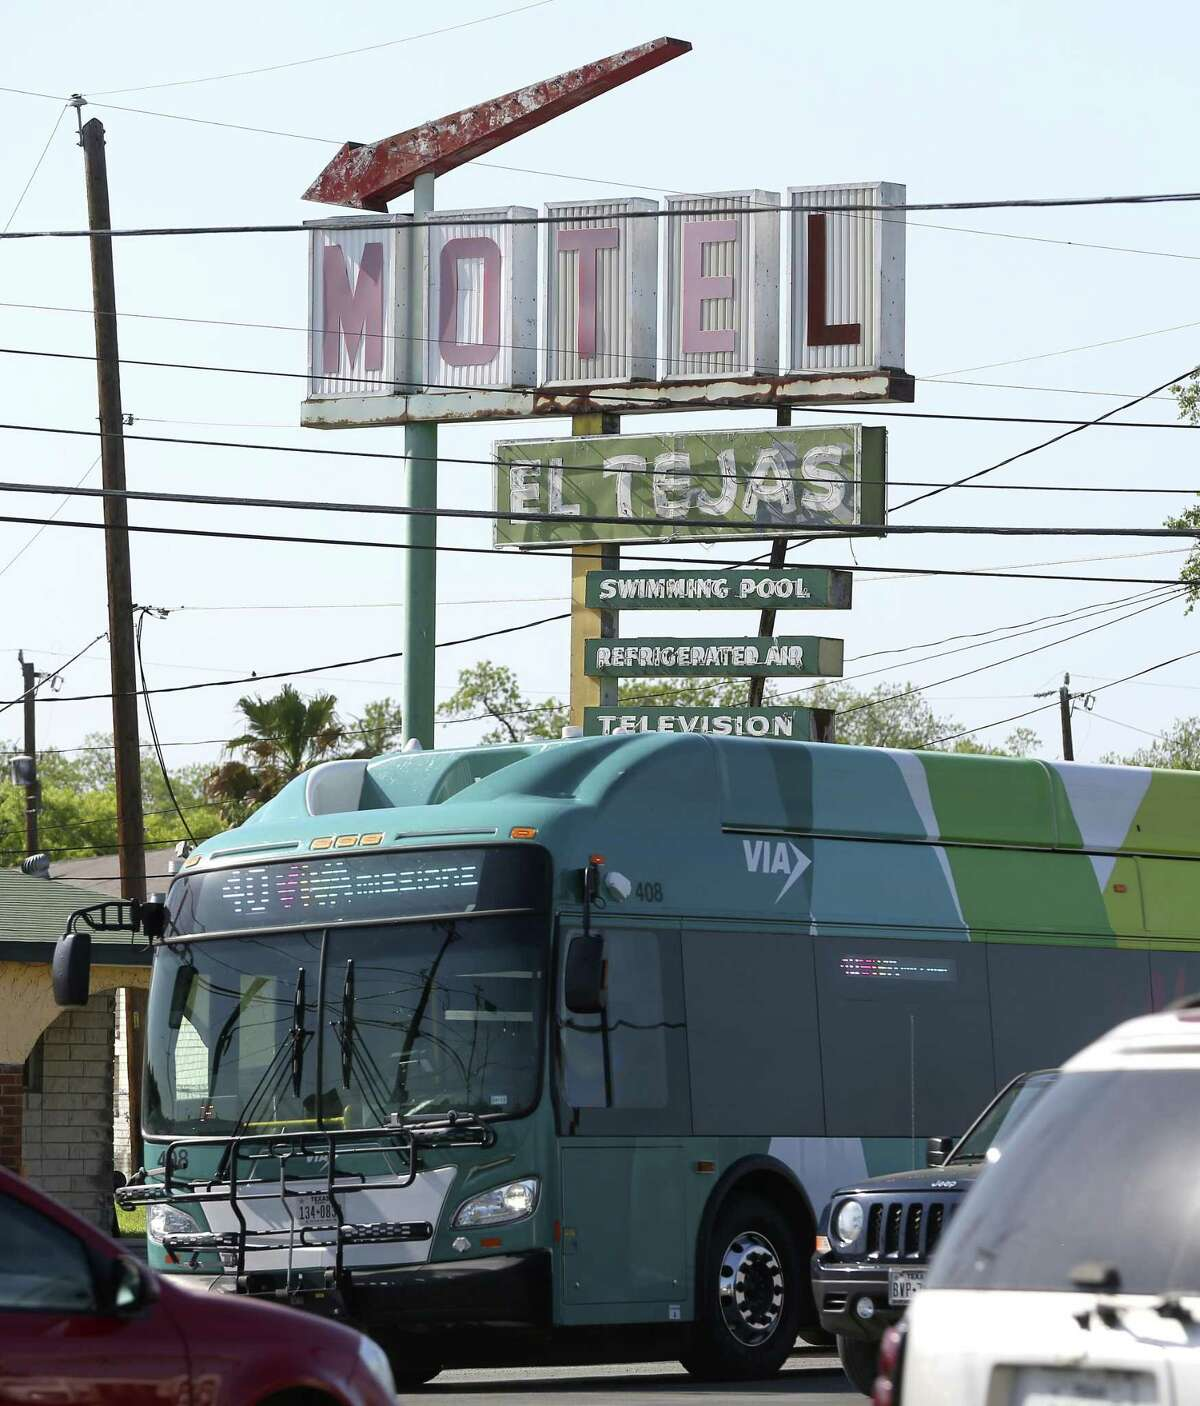 A VIA VIVA bus passes the Motel El Tejas last month as it travels south on Roosevelt Avenue toward Mission San Jose.